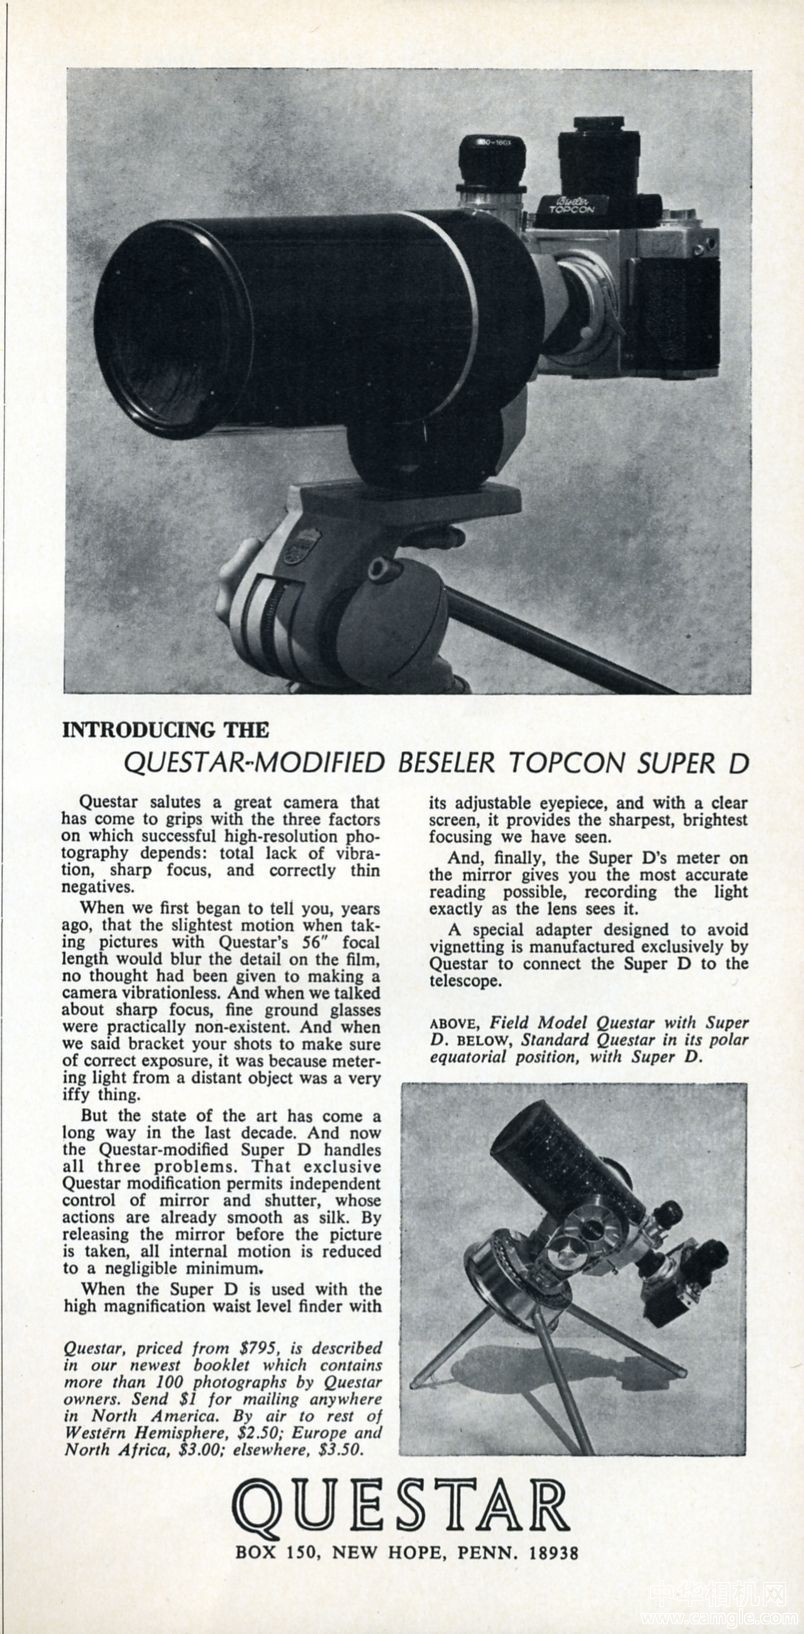 Beseler Topcon贝塞尔拓普康 Questar-modified Beseler Topcon Super D 1969_相机广告.jpg